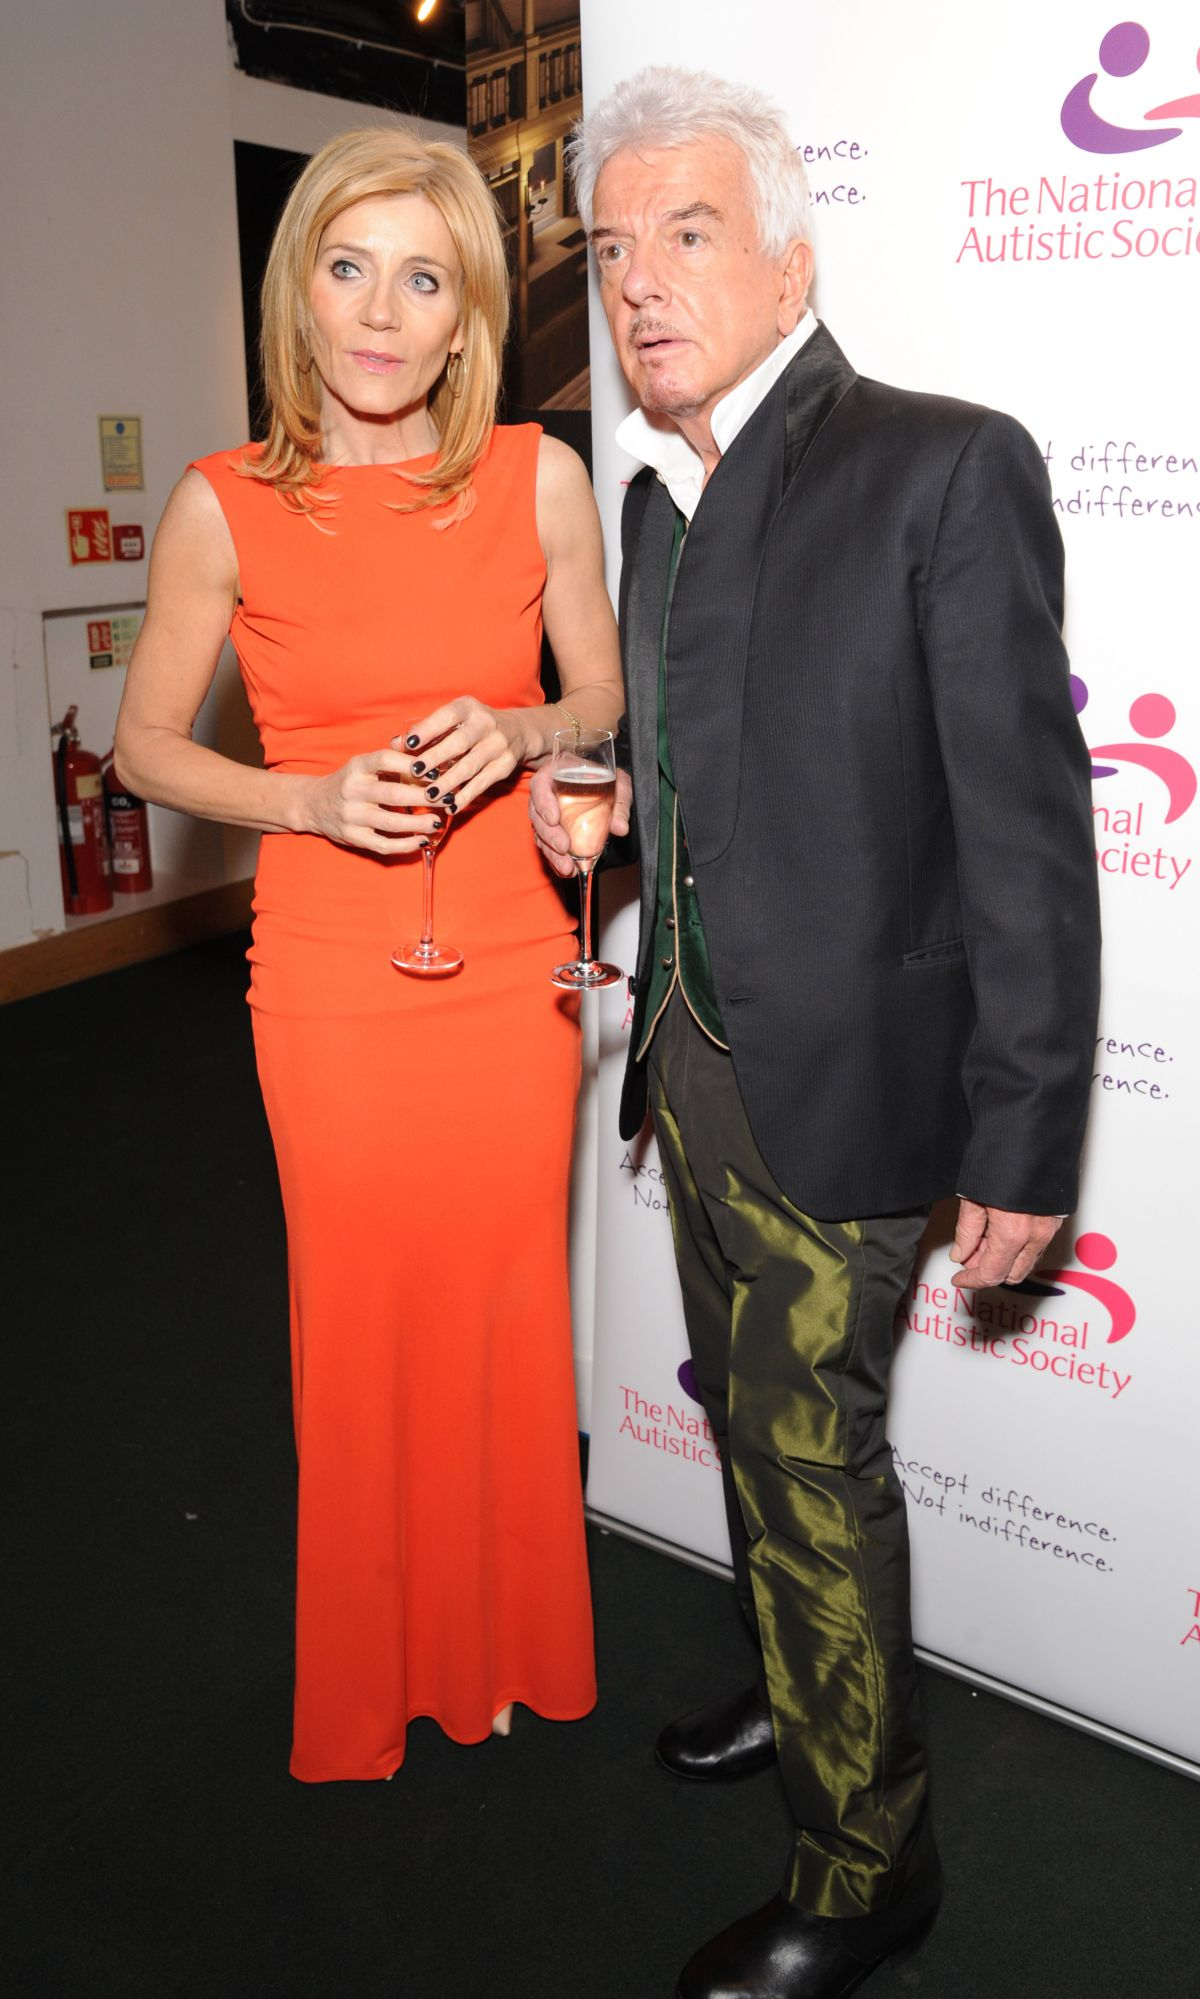 MICHELLE COLLINS at the National Autistic Society s Spectrum Ball